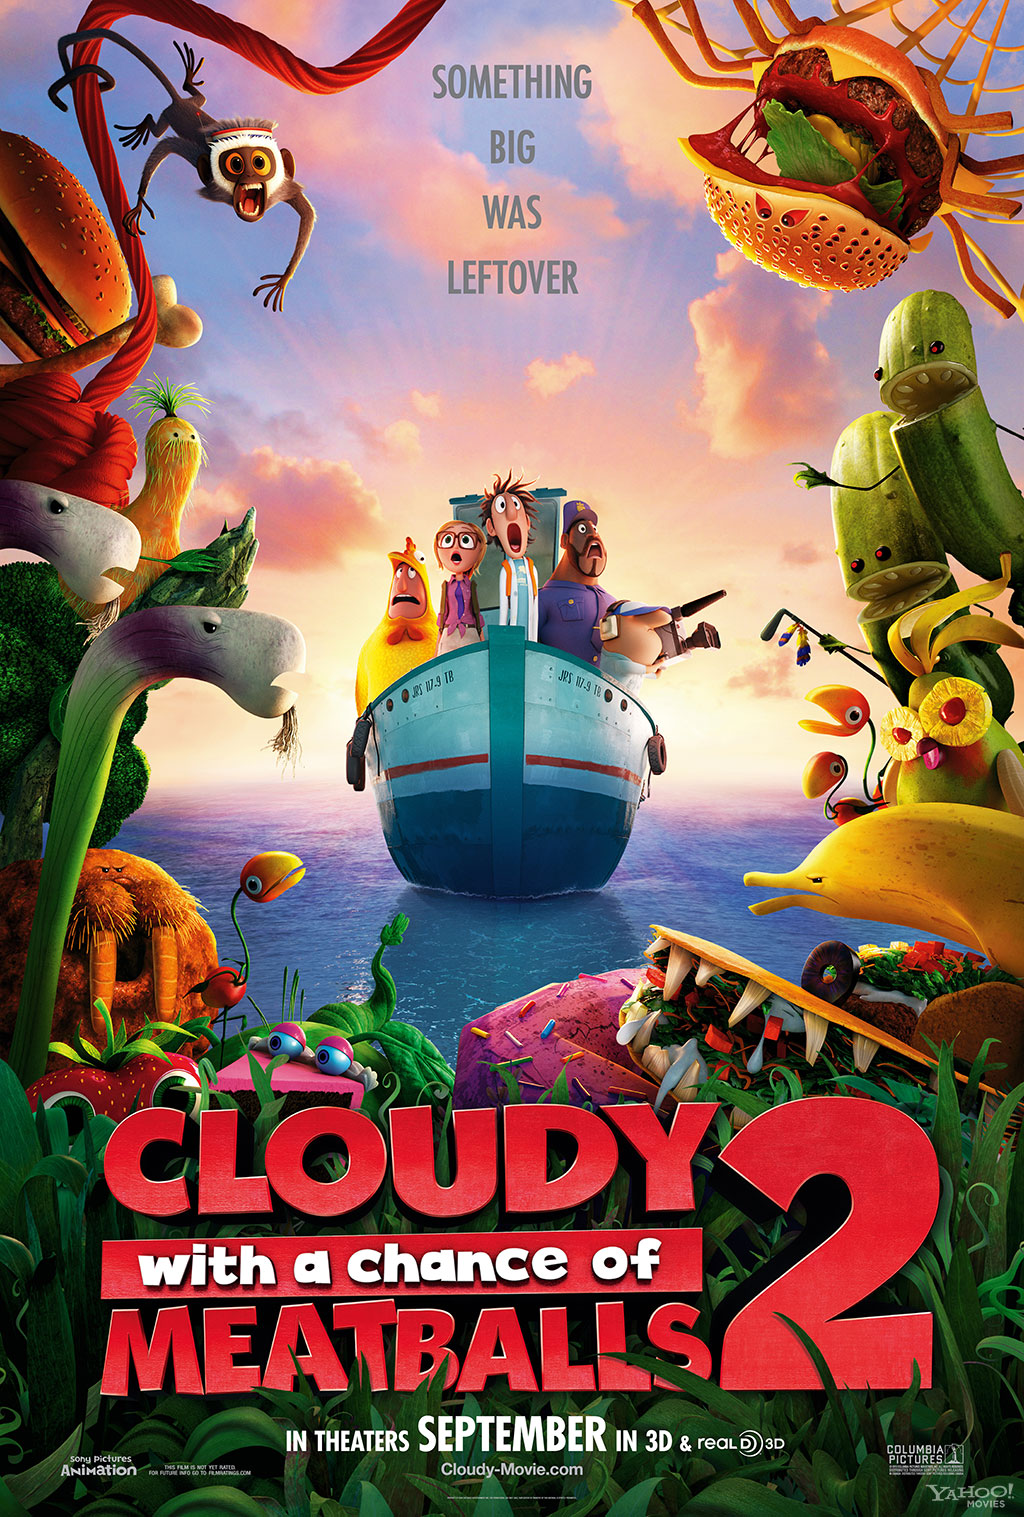 Meet The Foodimals In New Footage Images From Cloudy With A Chance Of Meatballs 2